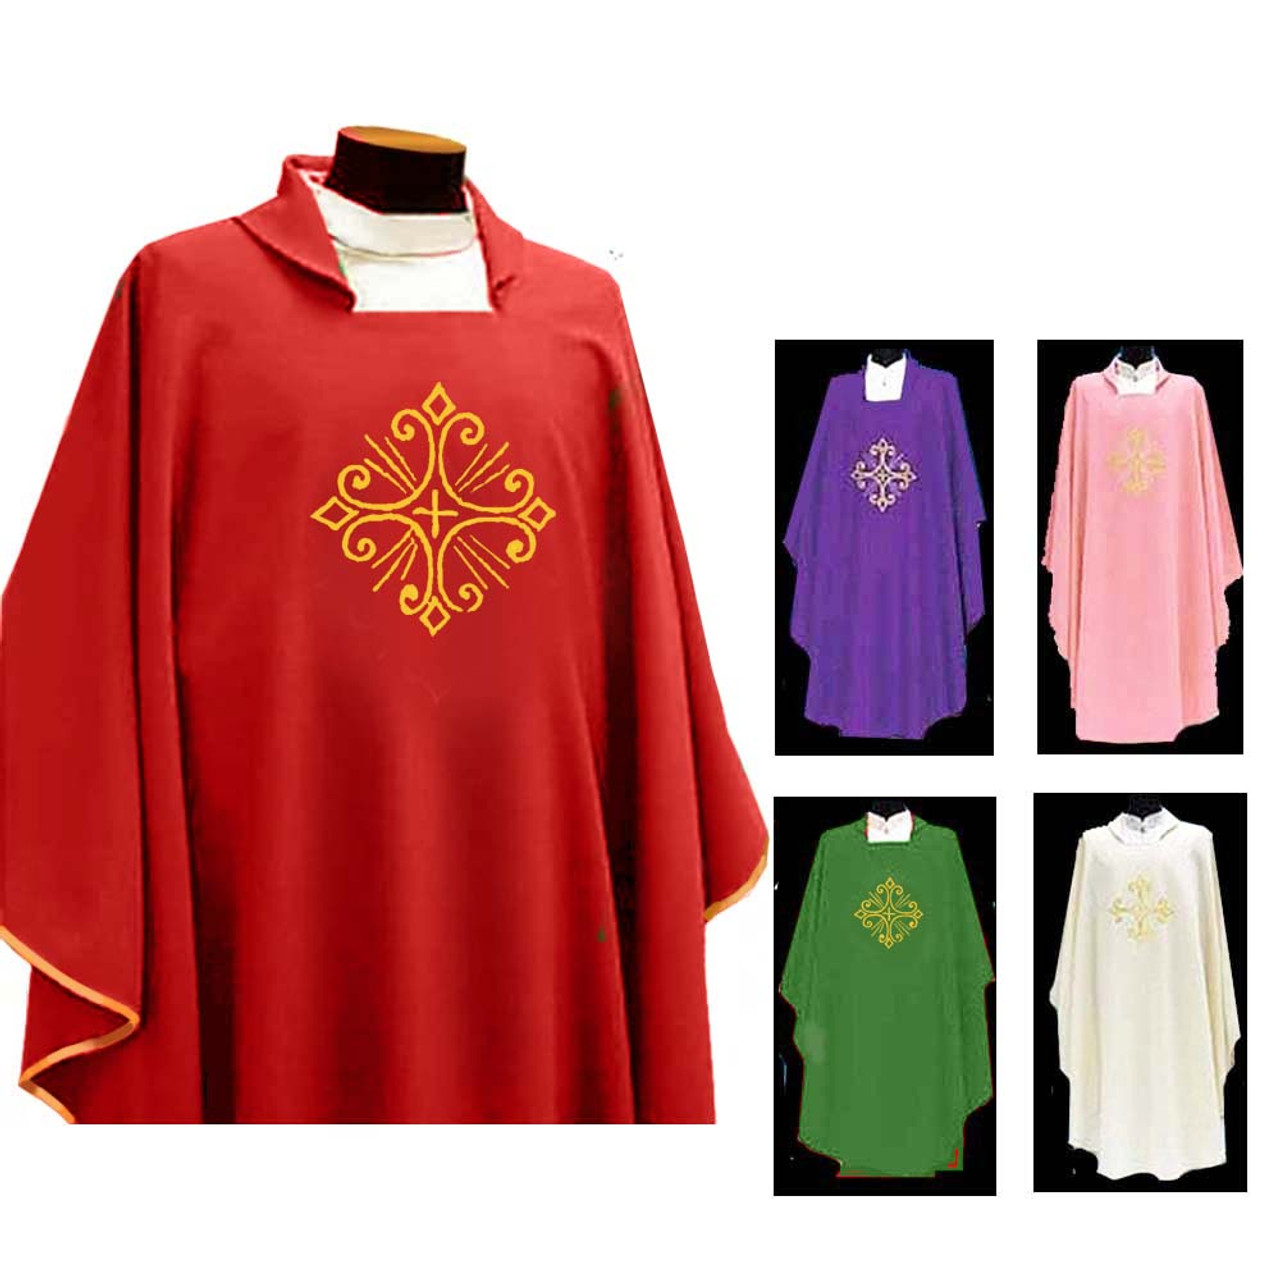 351 Red Chasuble